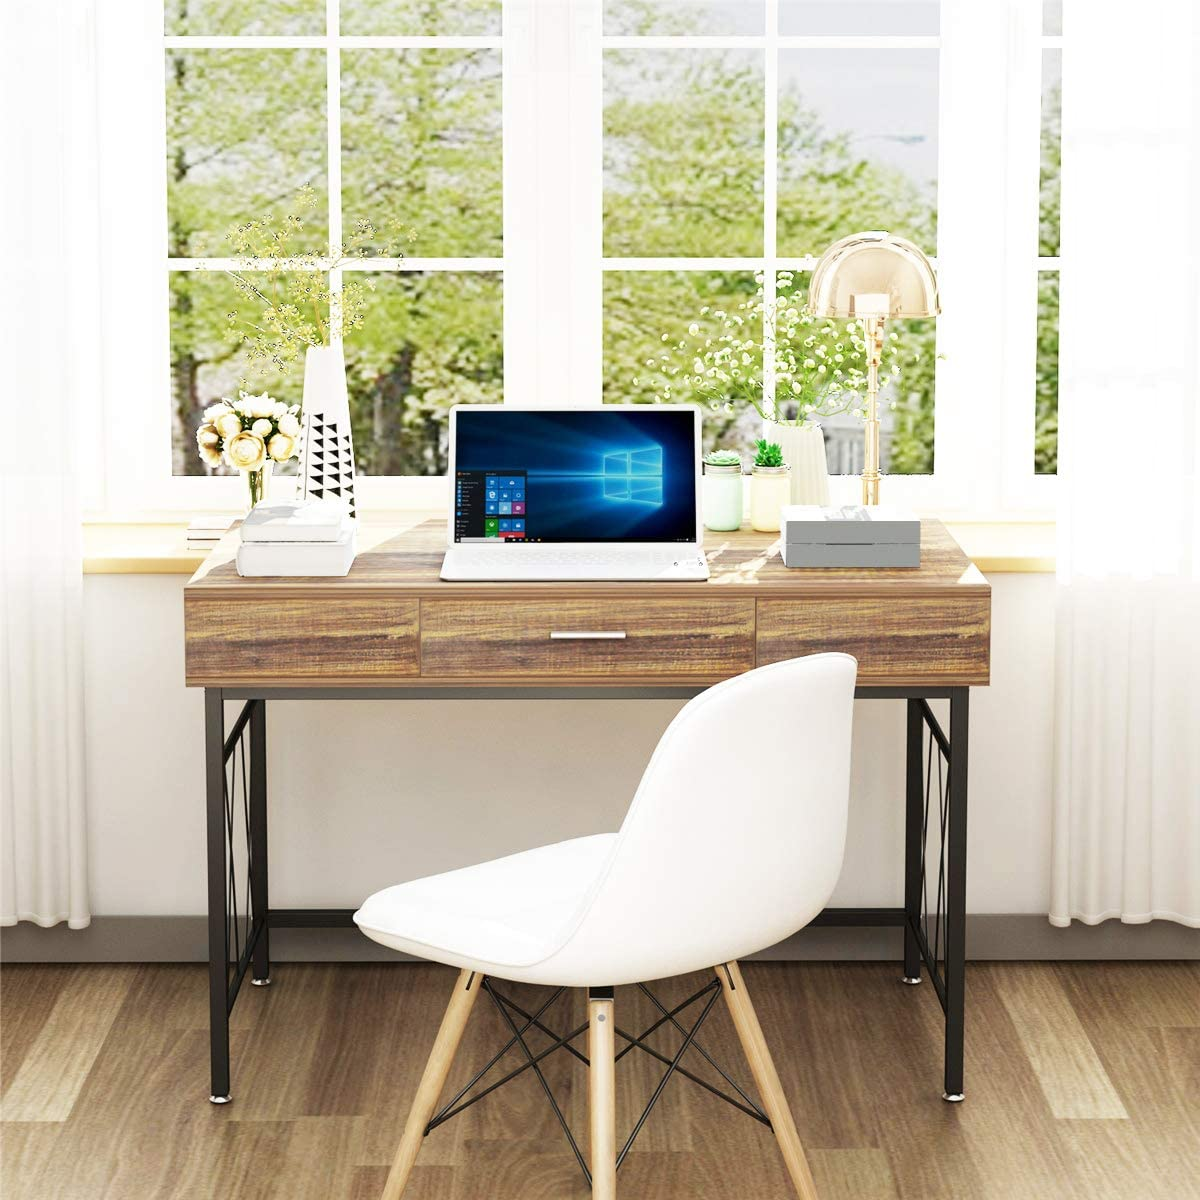 Computer Desk with Drawer 47 Executive Desk Writing Office Desk Workstation Table Space Saver for Home Office Study Room